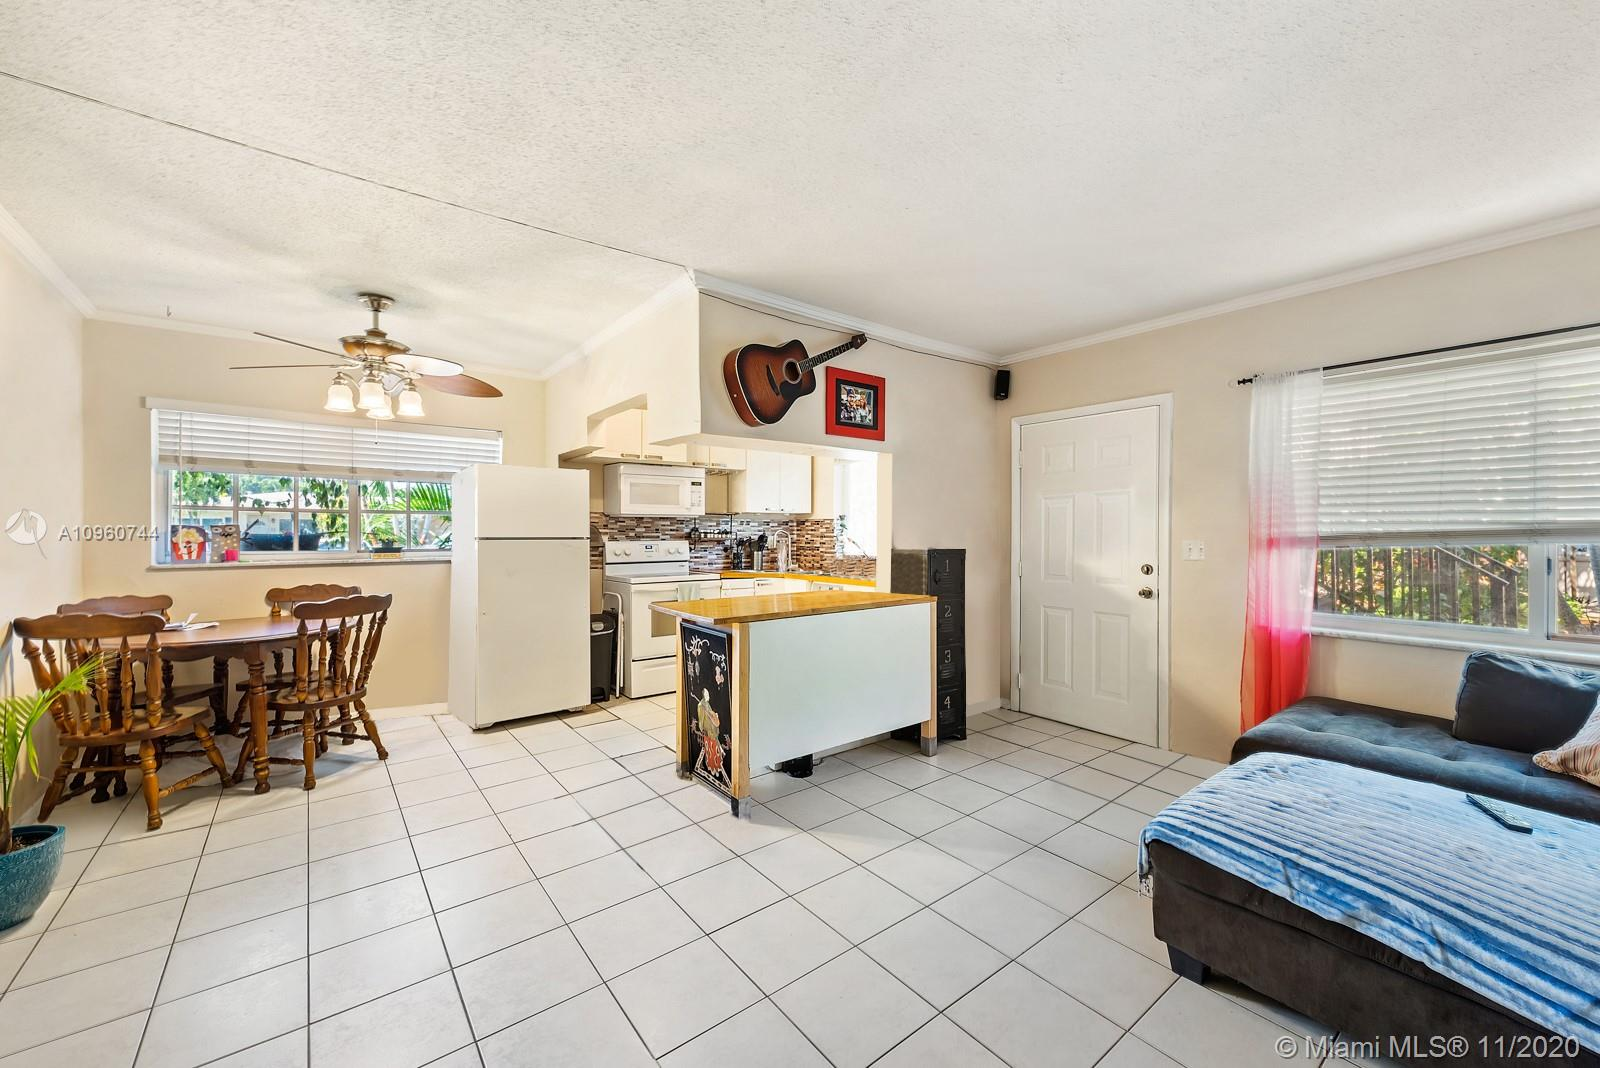 Charming Condo in Wilton Manors! Tenant occupied 2/2 condo in Windsor Court in Wilton Manors at an amazing price! Spacious and Bright corner unit, featuring big windows and an open kitchen. Washer & Dryer located inside of the unit. Conveniently located off Oakland Park Blvd with easy access to the Beach, and walkable to Wilton Drive shops, restaurants and lounges. Property rented until 4/30/21.